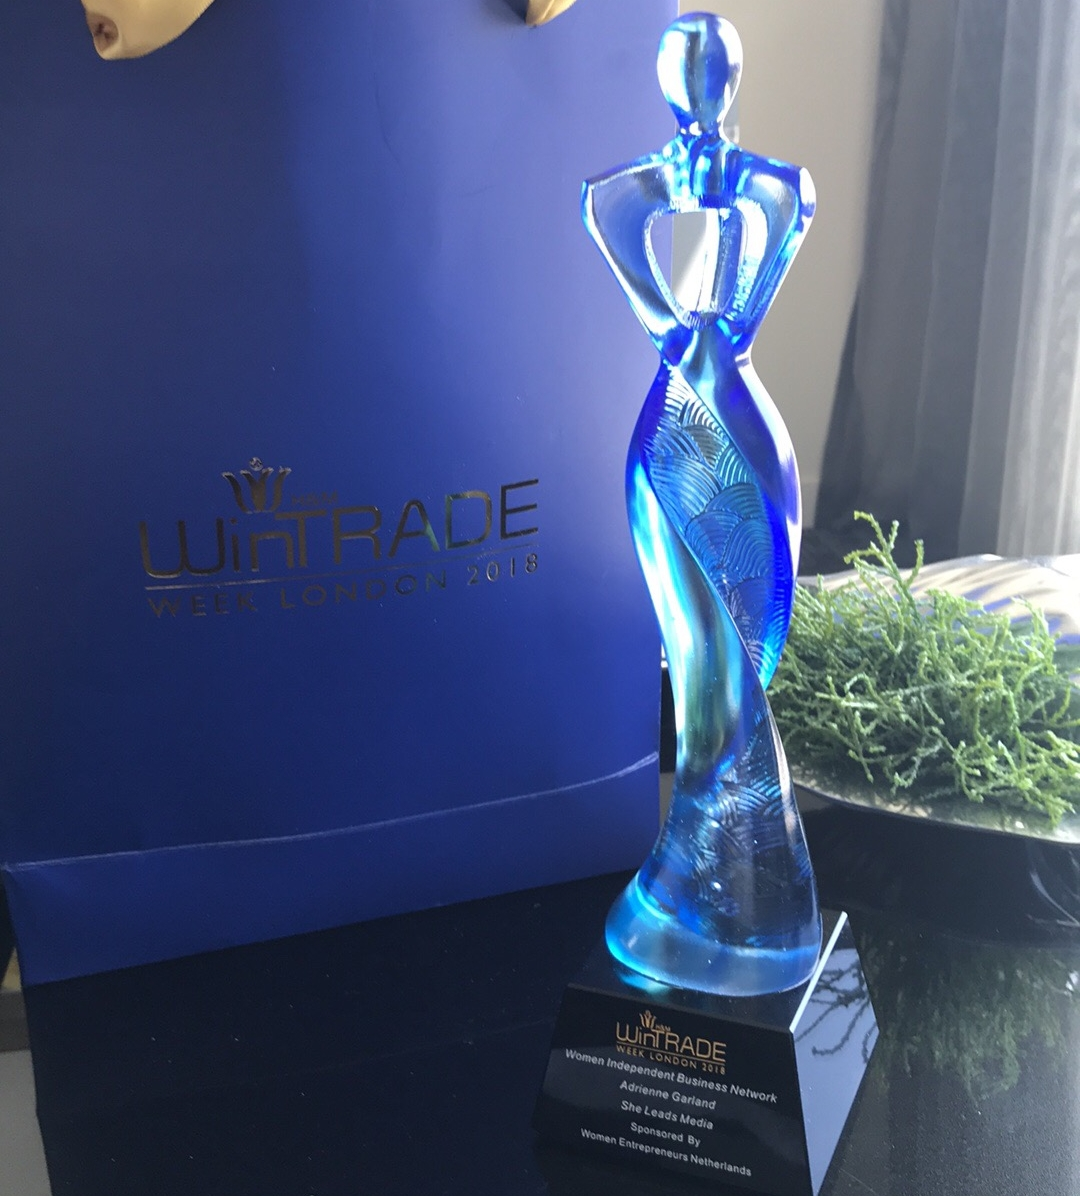 International WinTrade Award